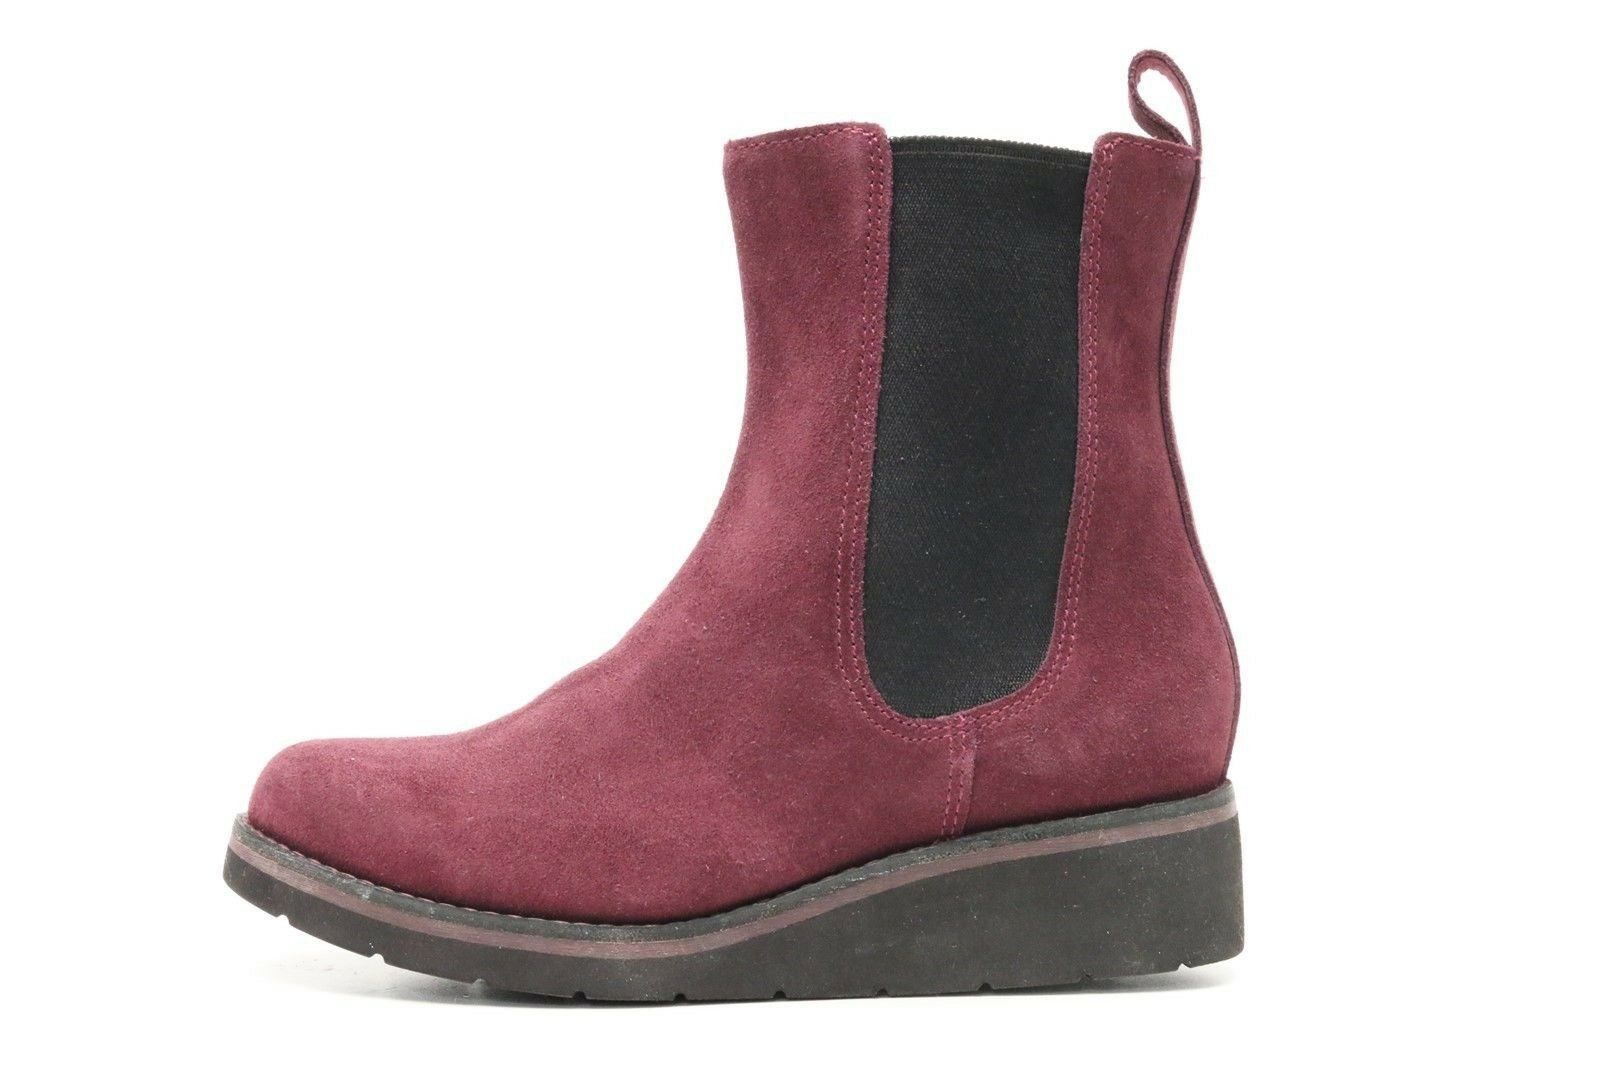 Womens COLE HAAN 22234 claret suede leather pull on short boots sz. 6 B NEW  288